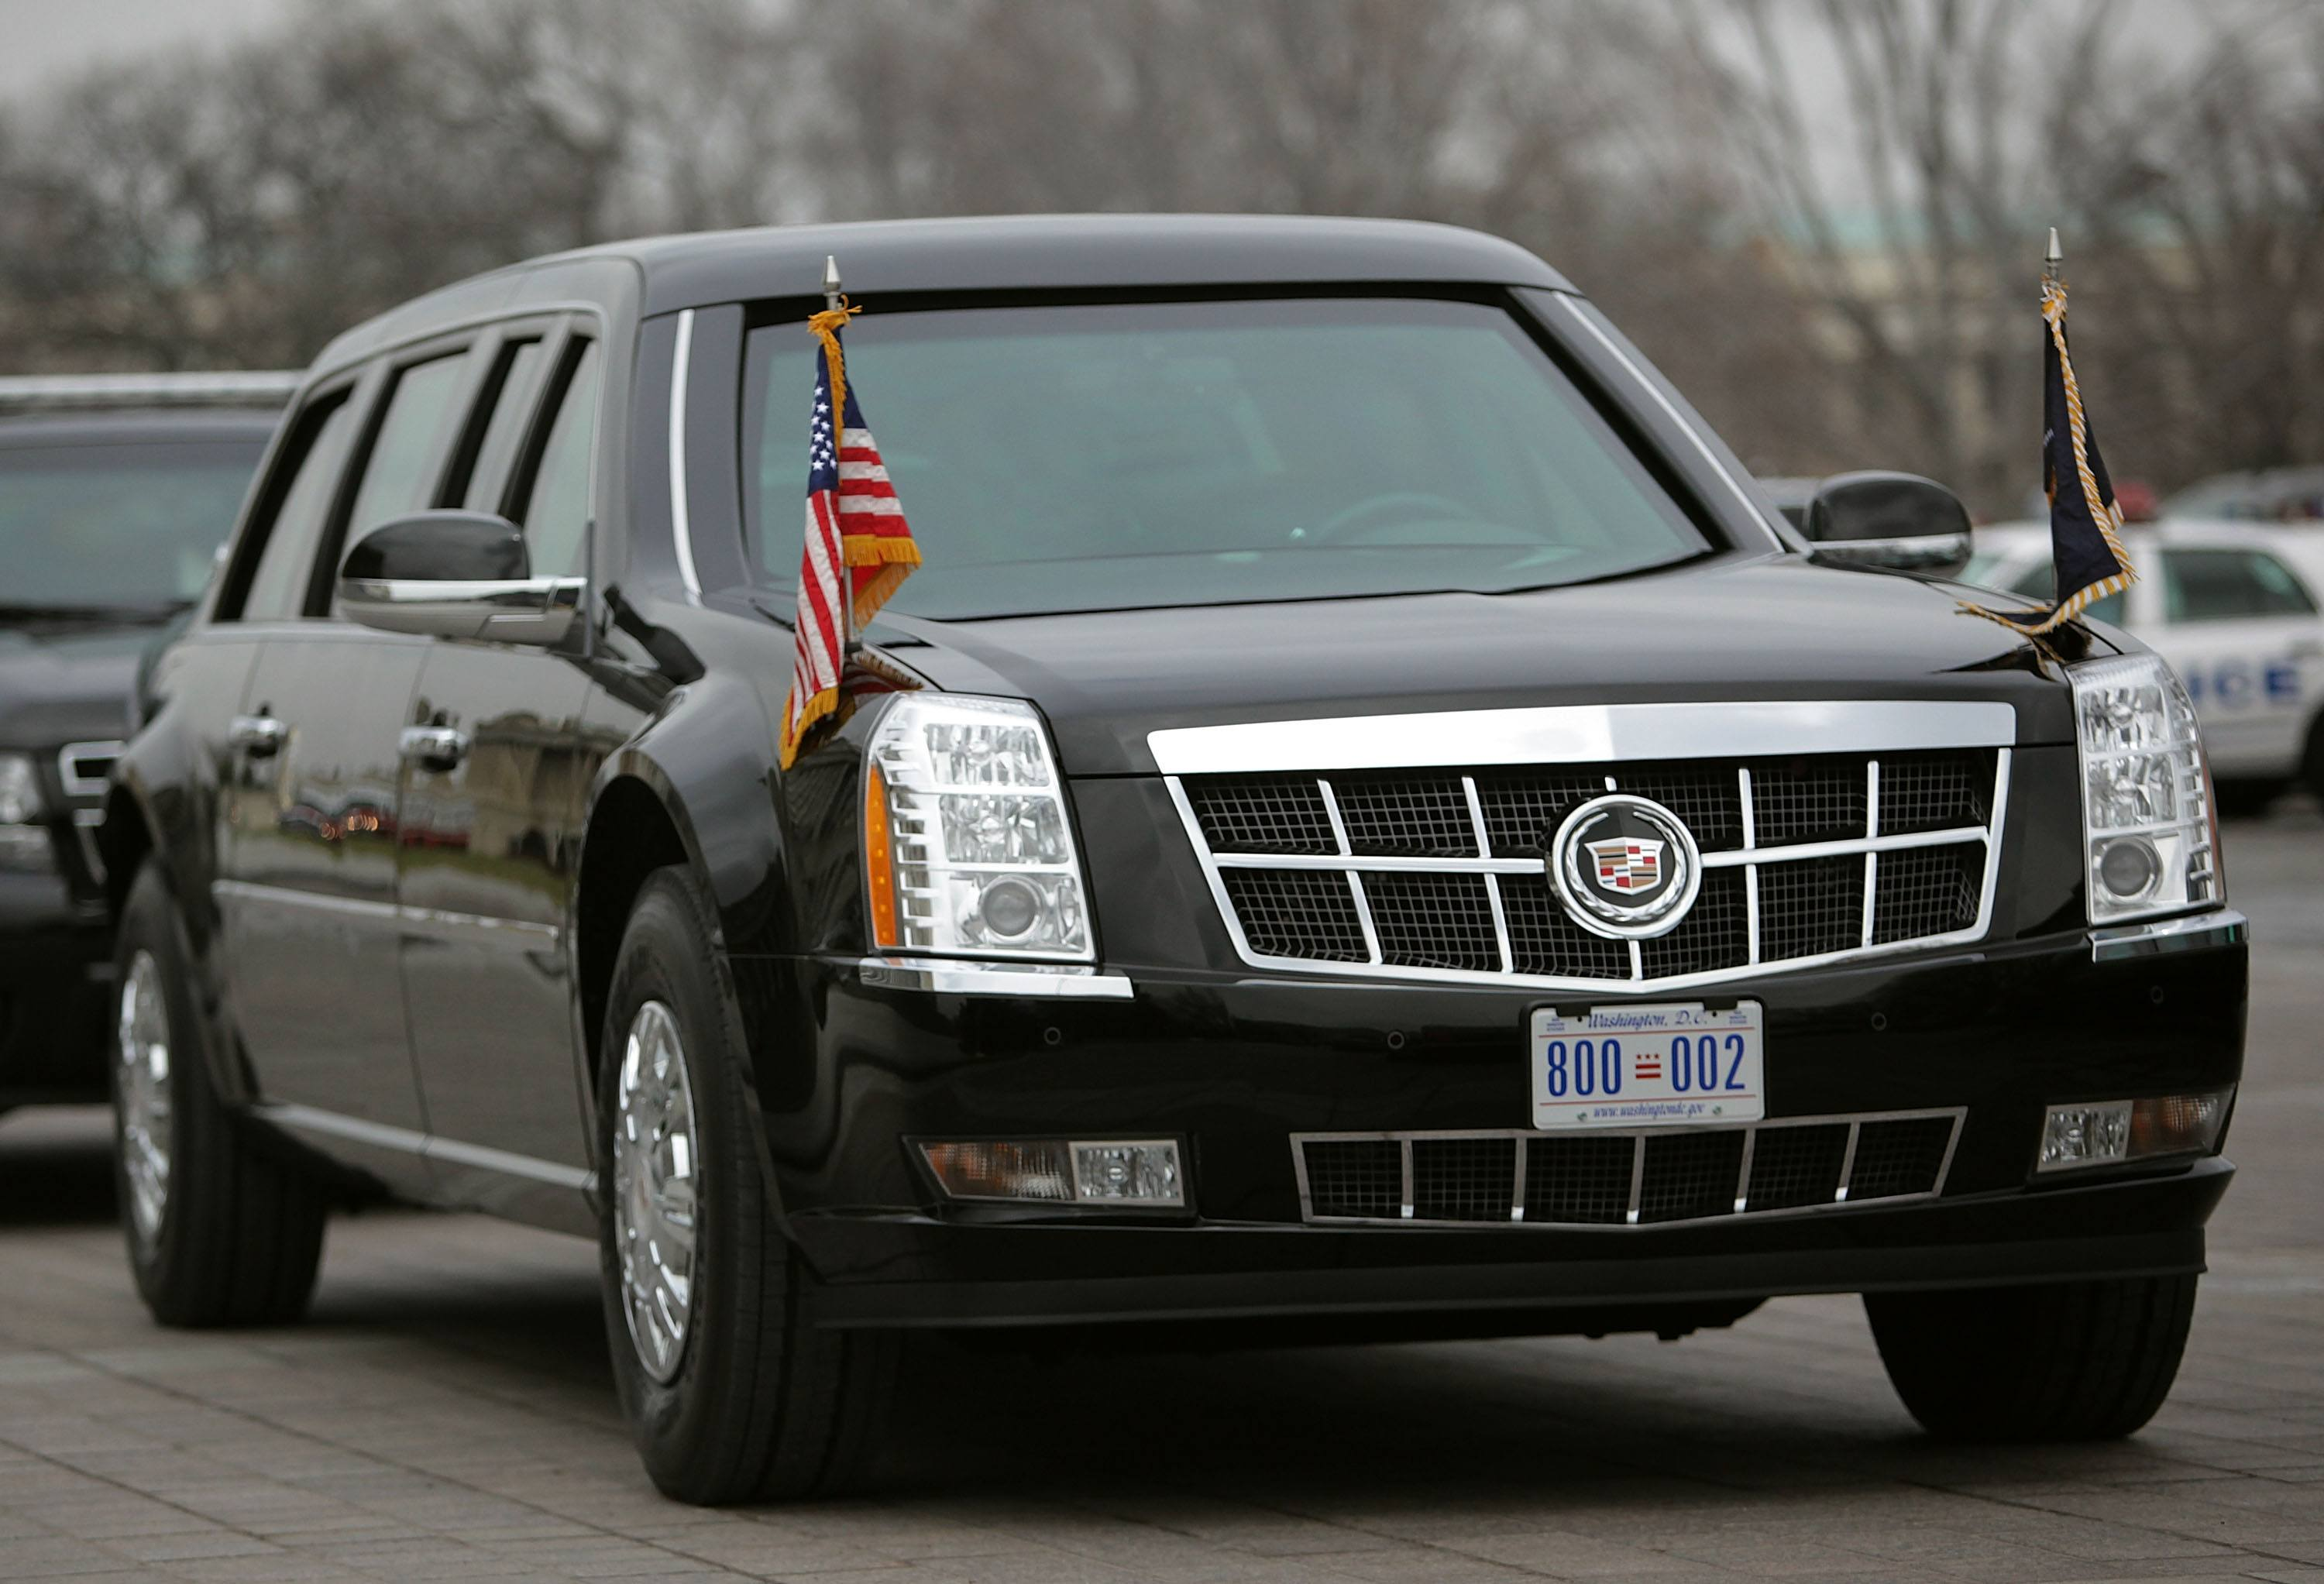 Presidential Limo AKA 'The Beast'